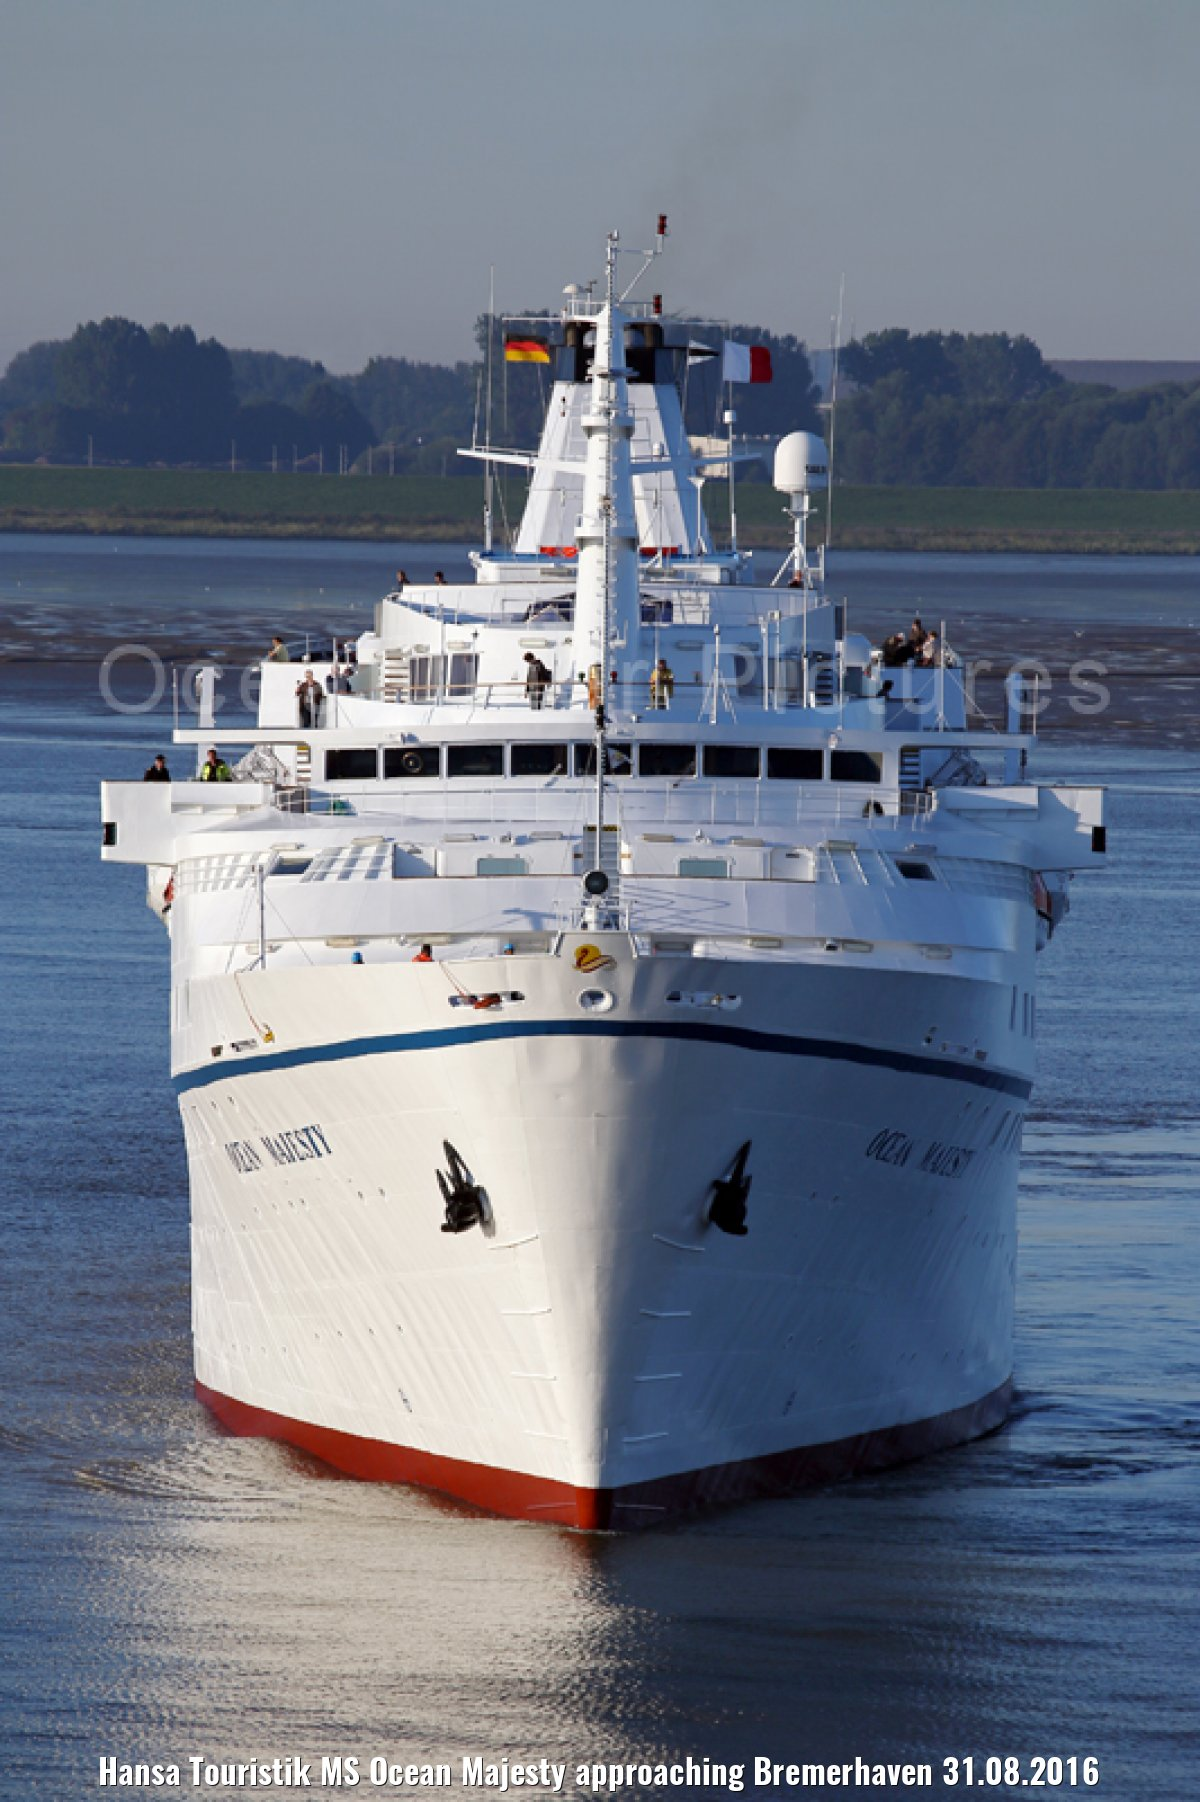 Hansa Touristik MS Ocean Majesty approaching Bremerhaven 31.08.2016